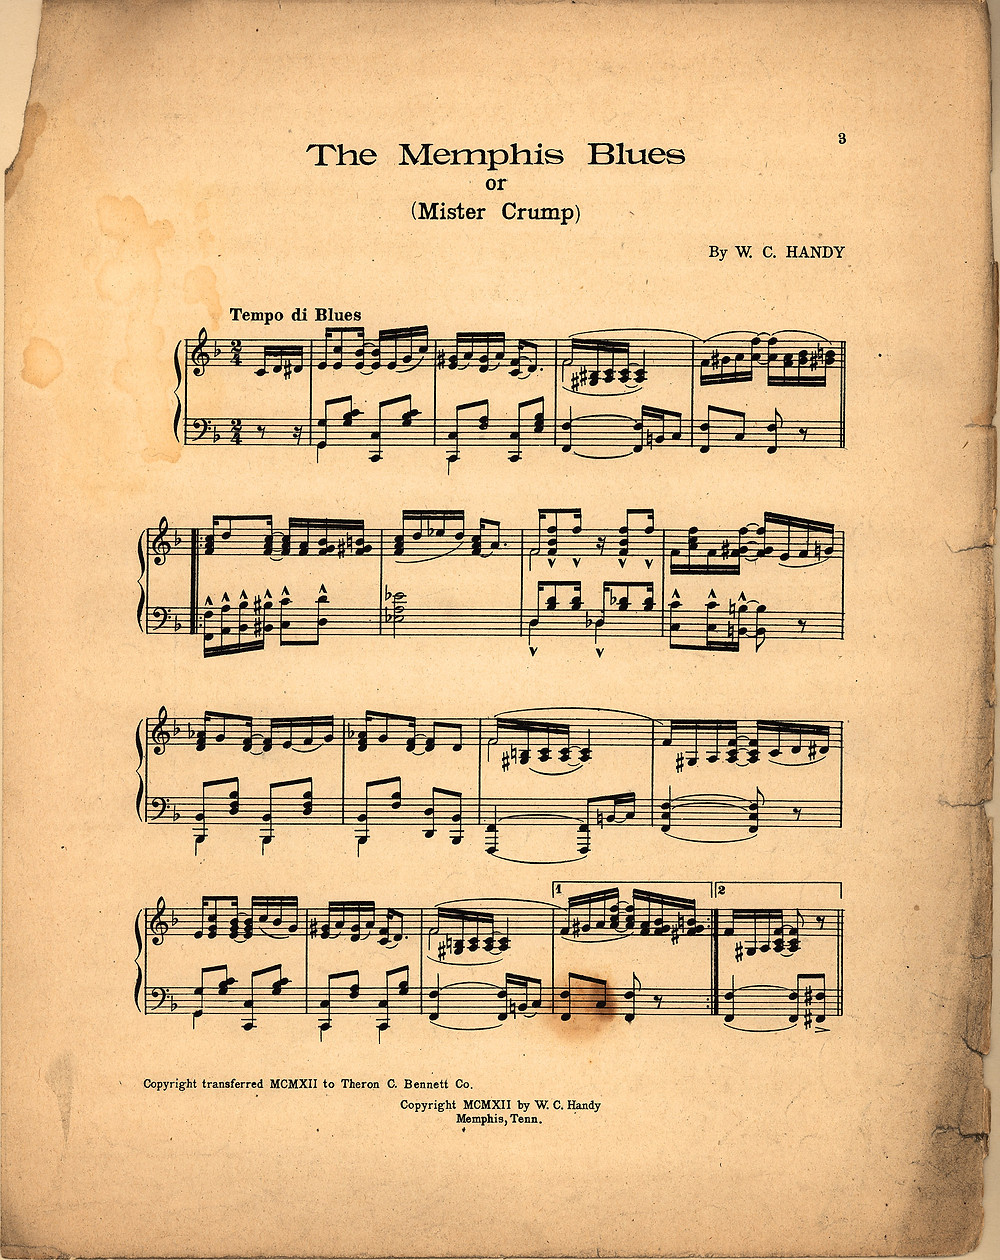 Original Sheet music of The Memphis Blues - 1912